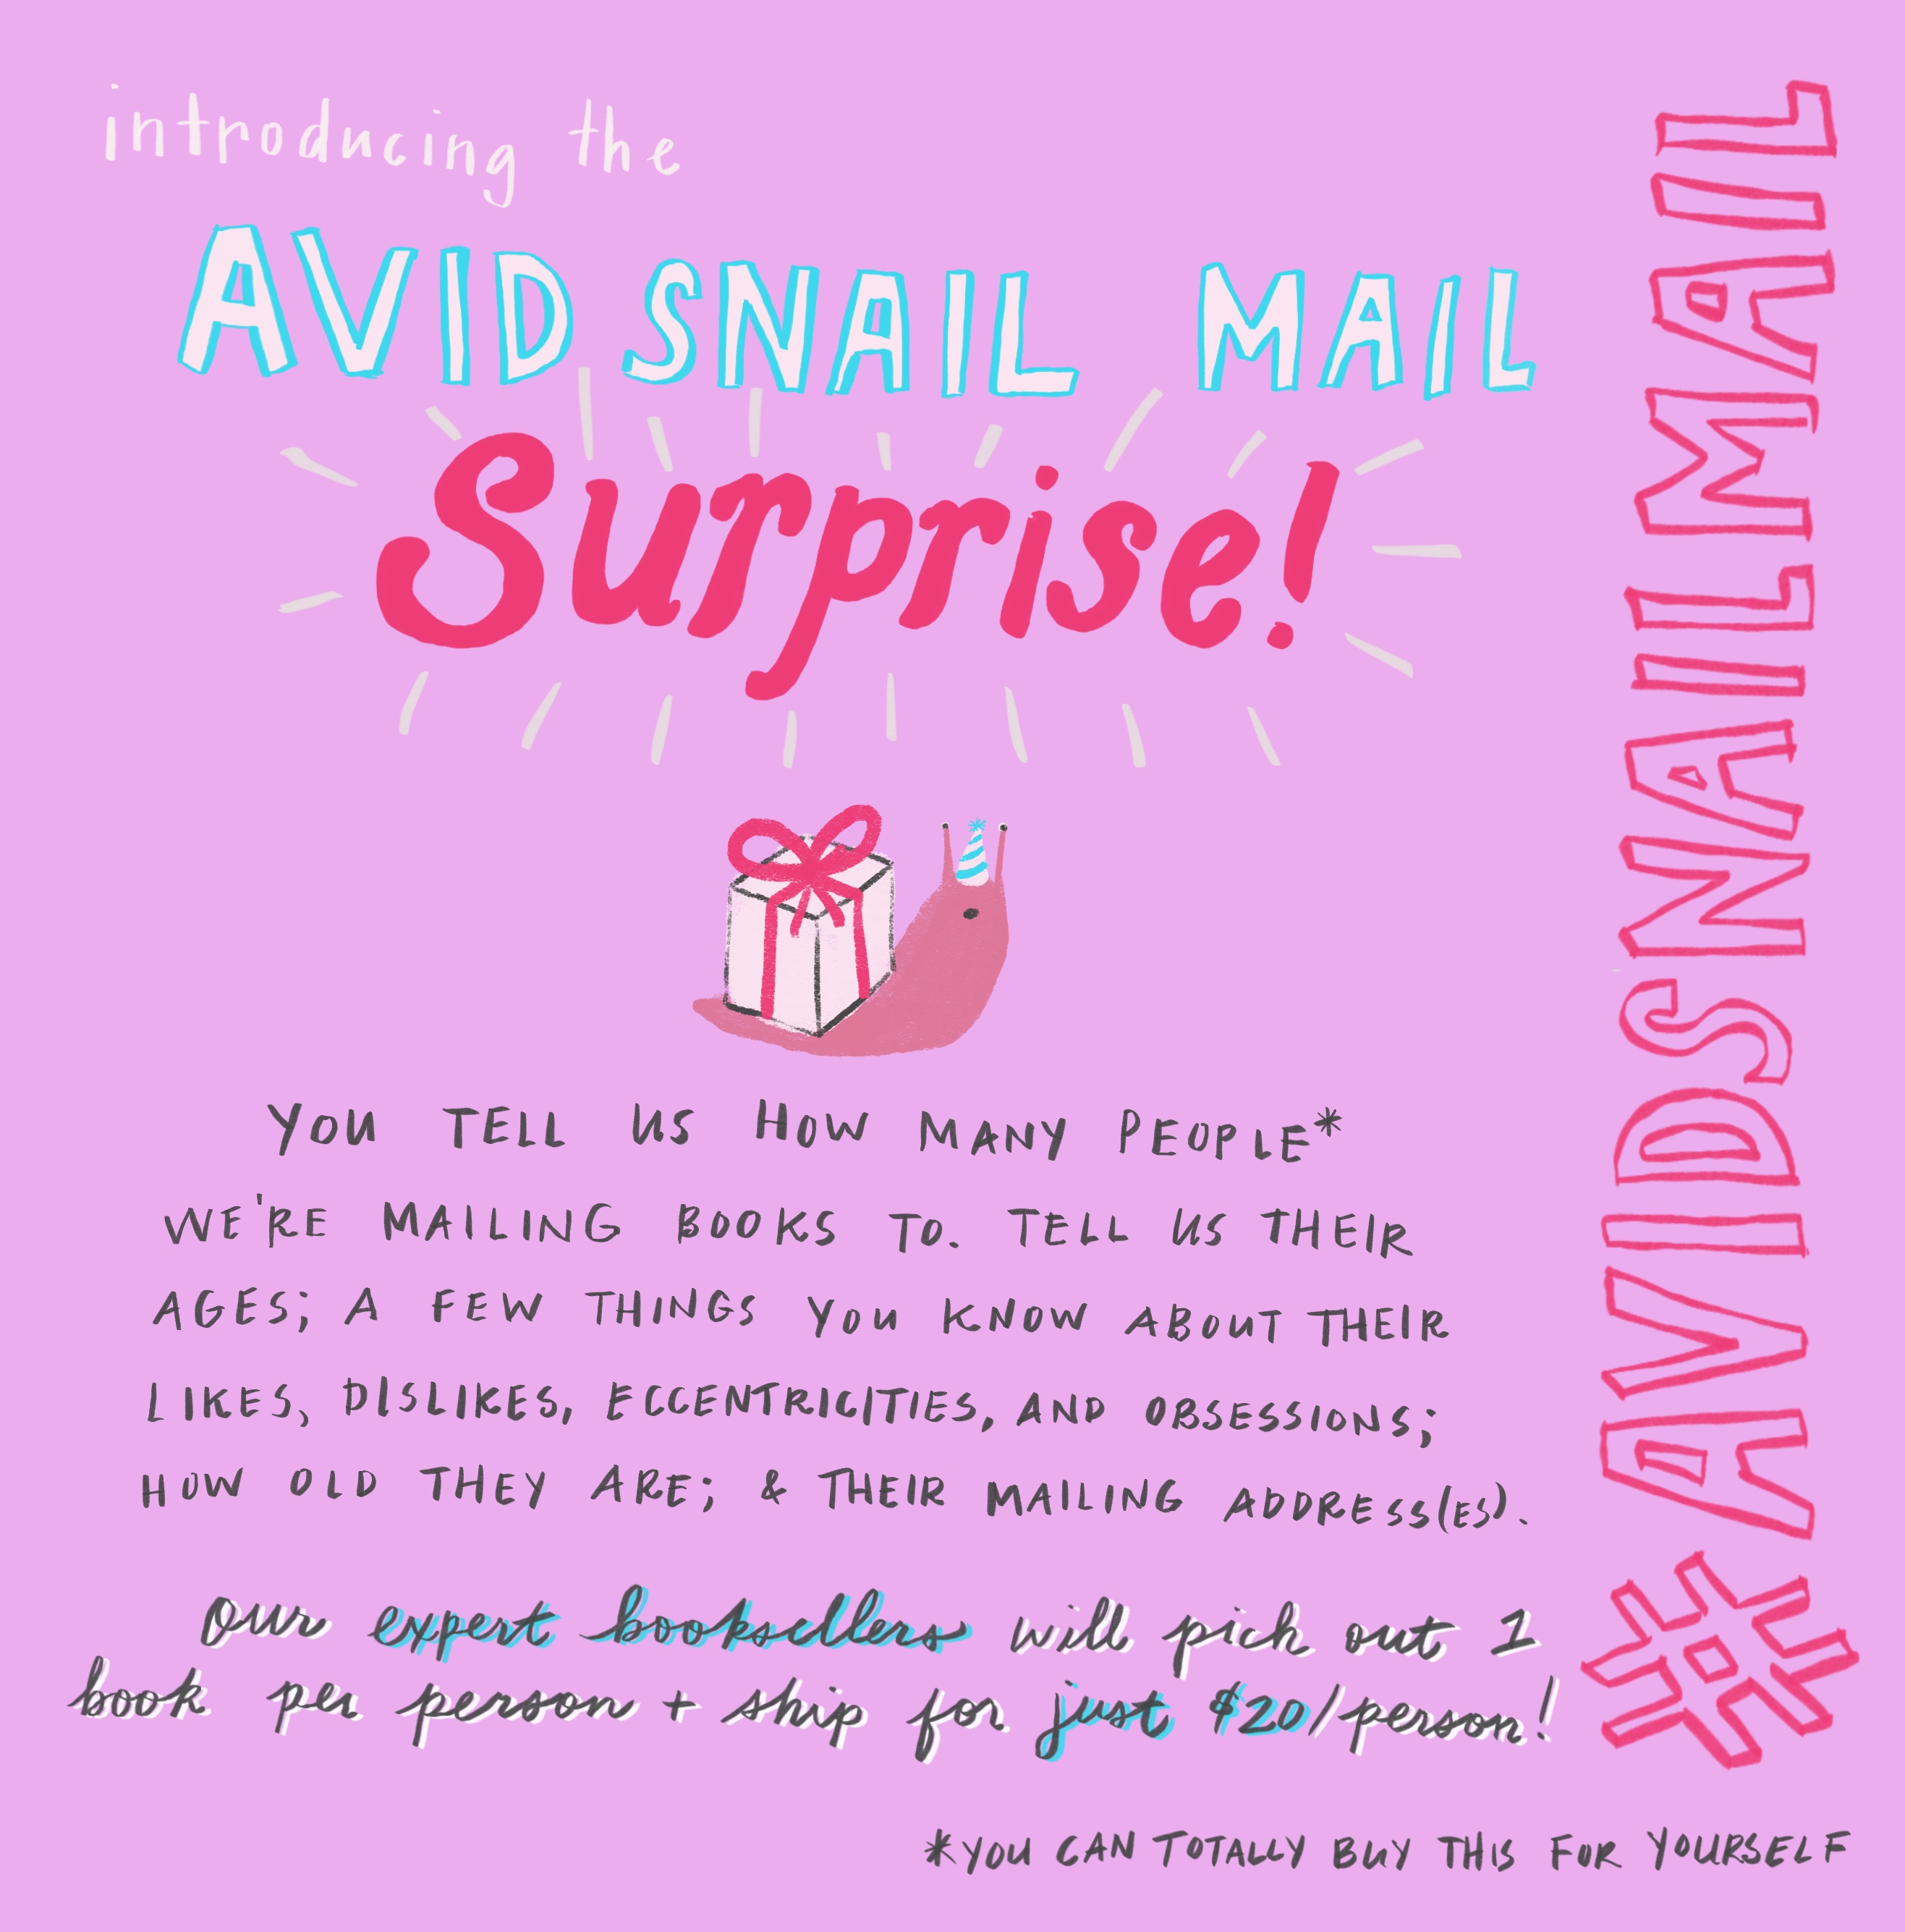 Avid Snail Mail Surprise! - our expert booksellers will pick out 1 book per person and ship for just $20 per person #avidsnailmail